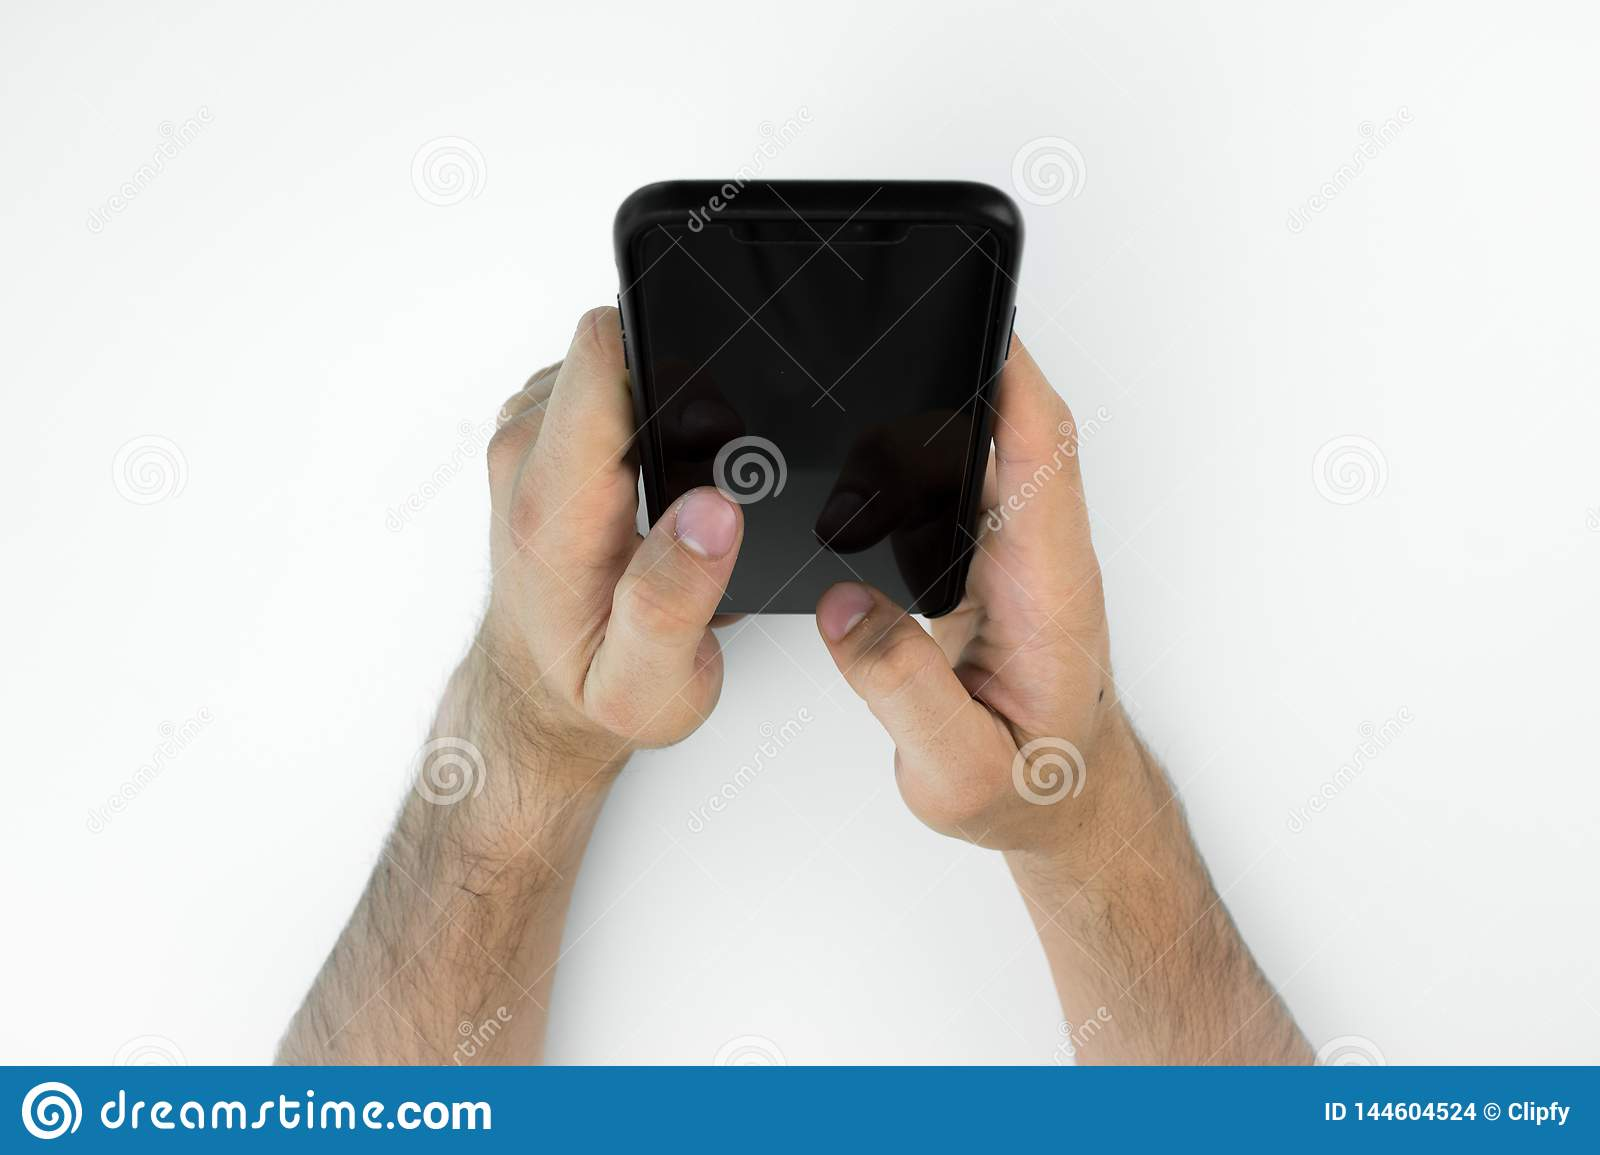 Business person using his smartphone on a white table.